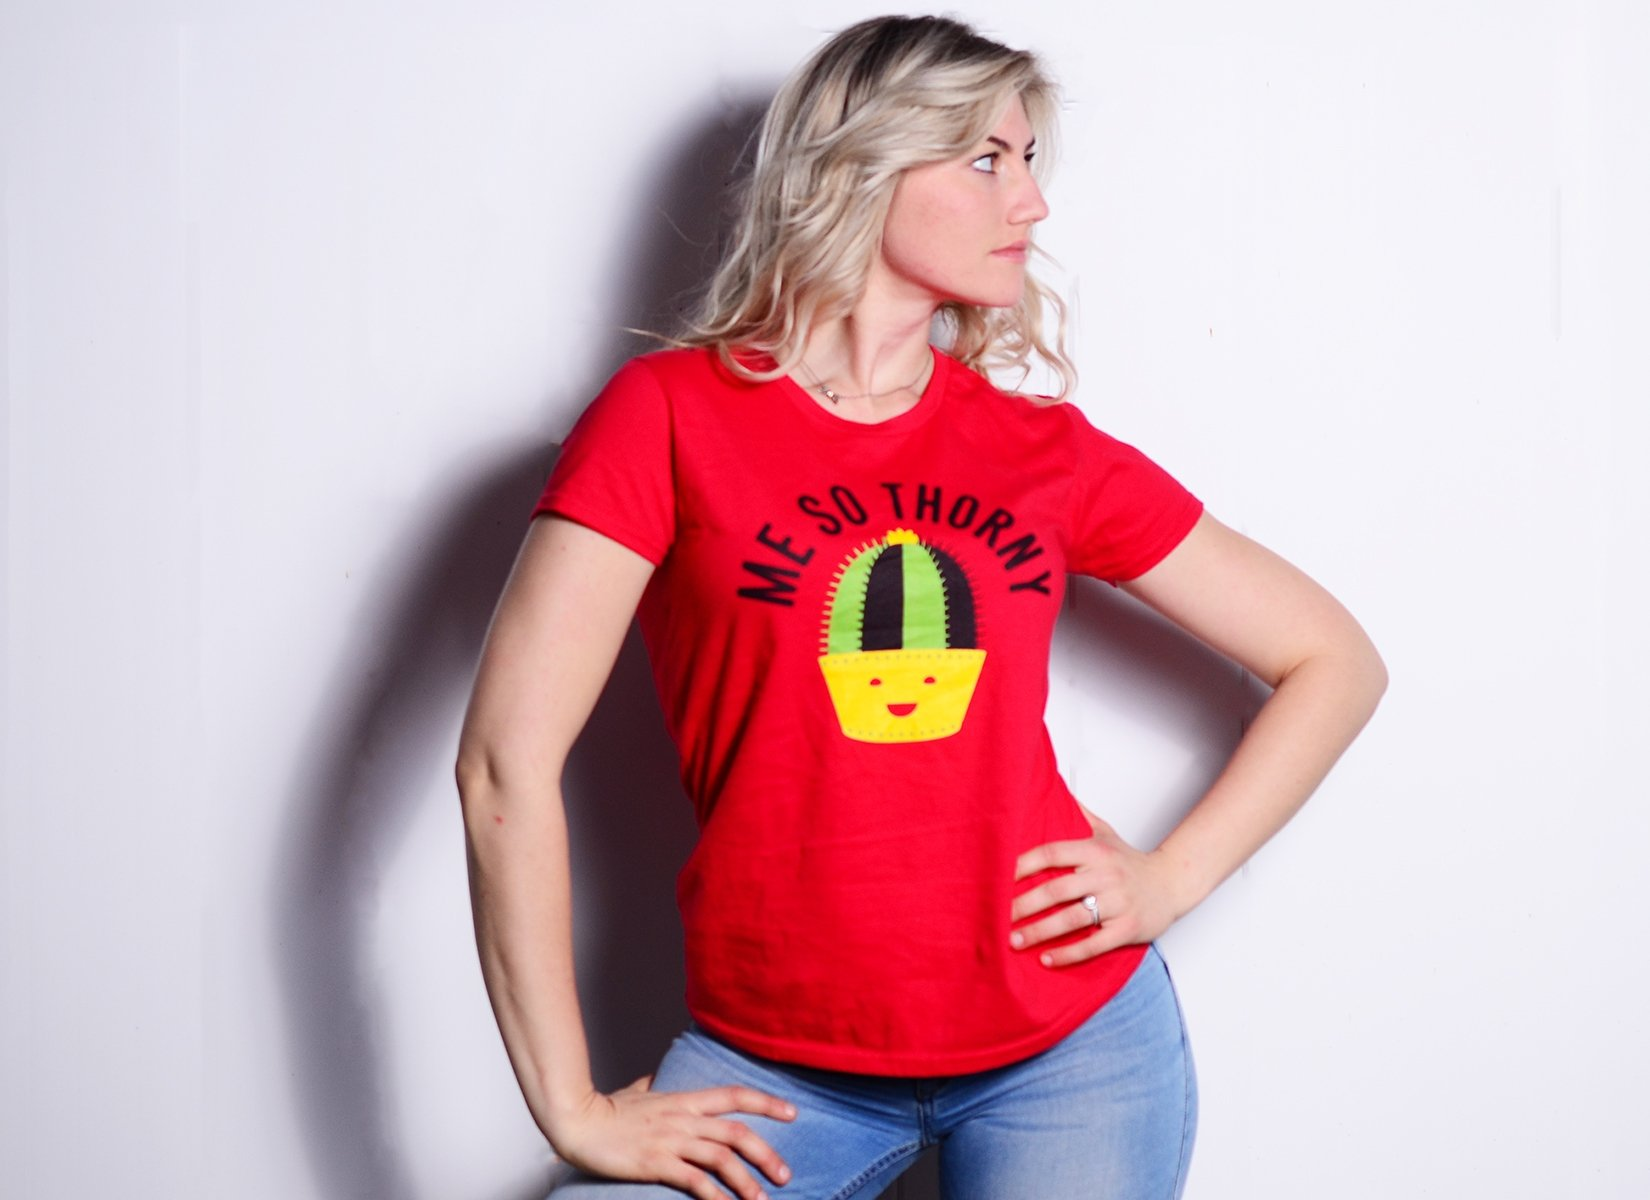 Me So Thorny on Womens T-Shirt